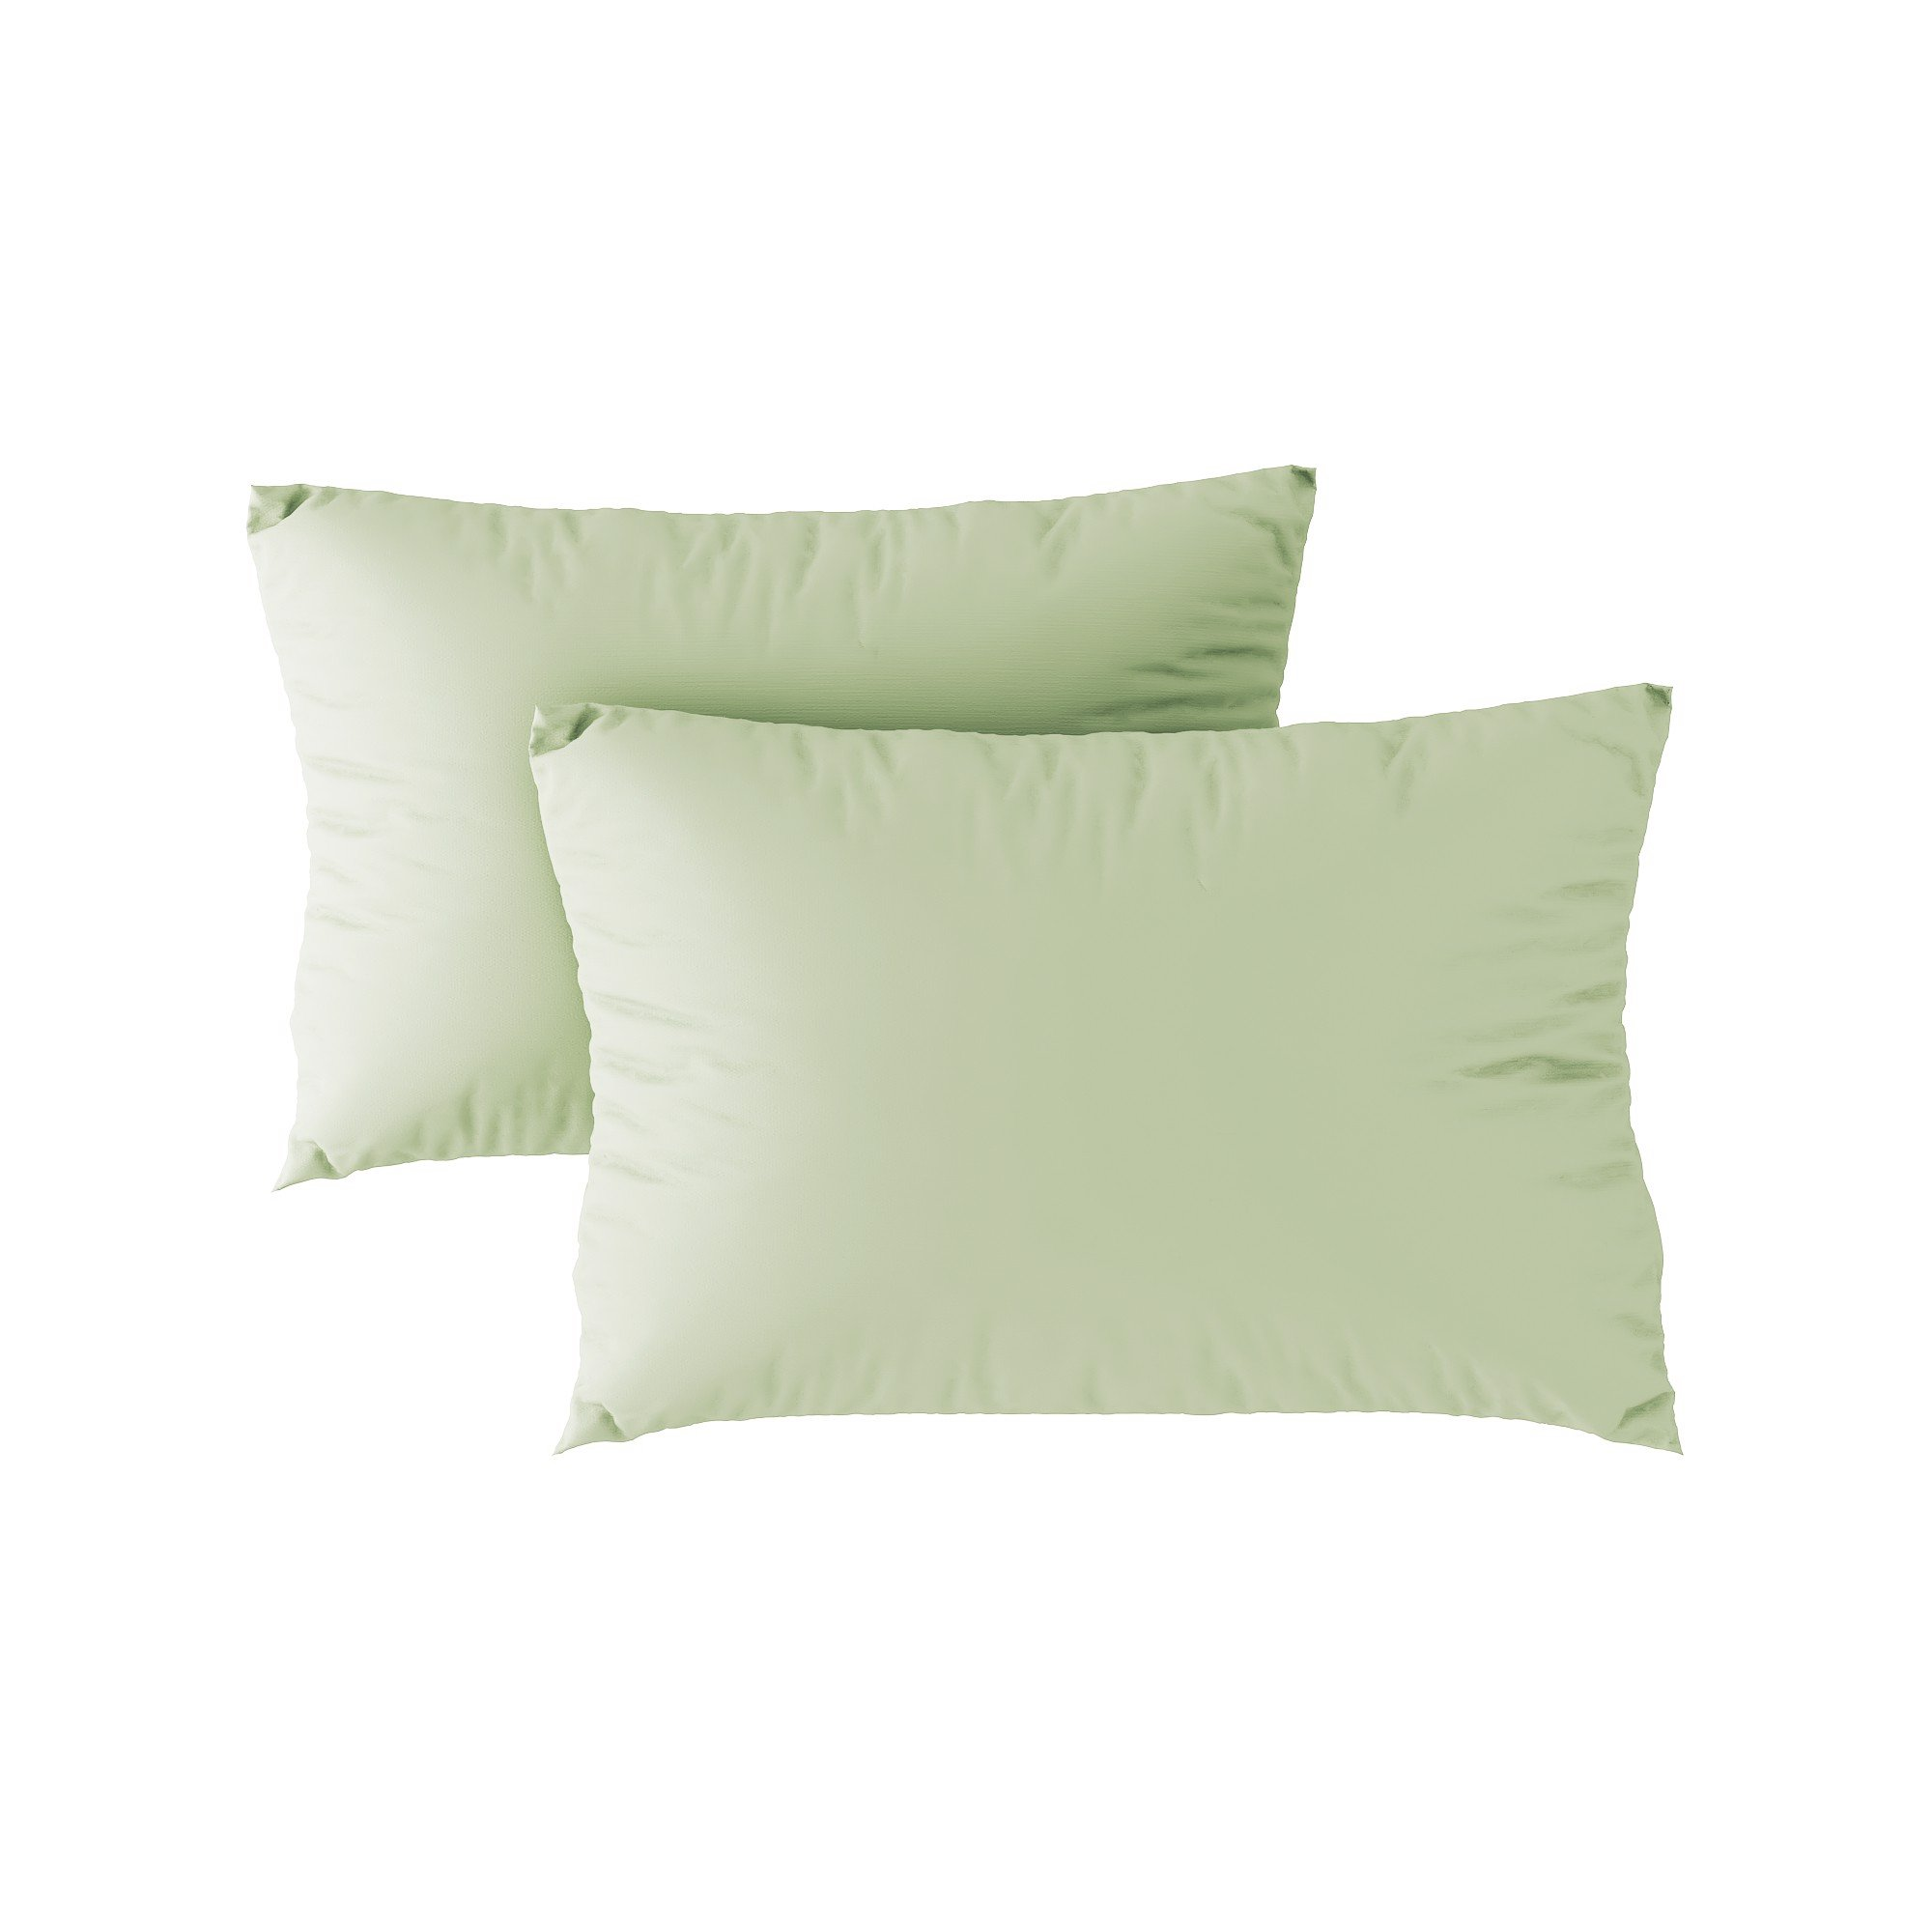 Standard pillow case 26 Sage green (2pcs)